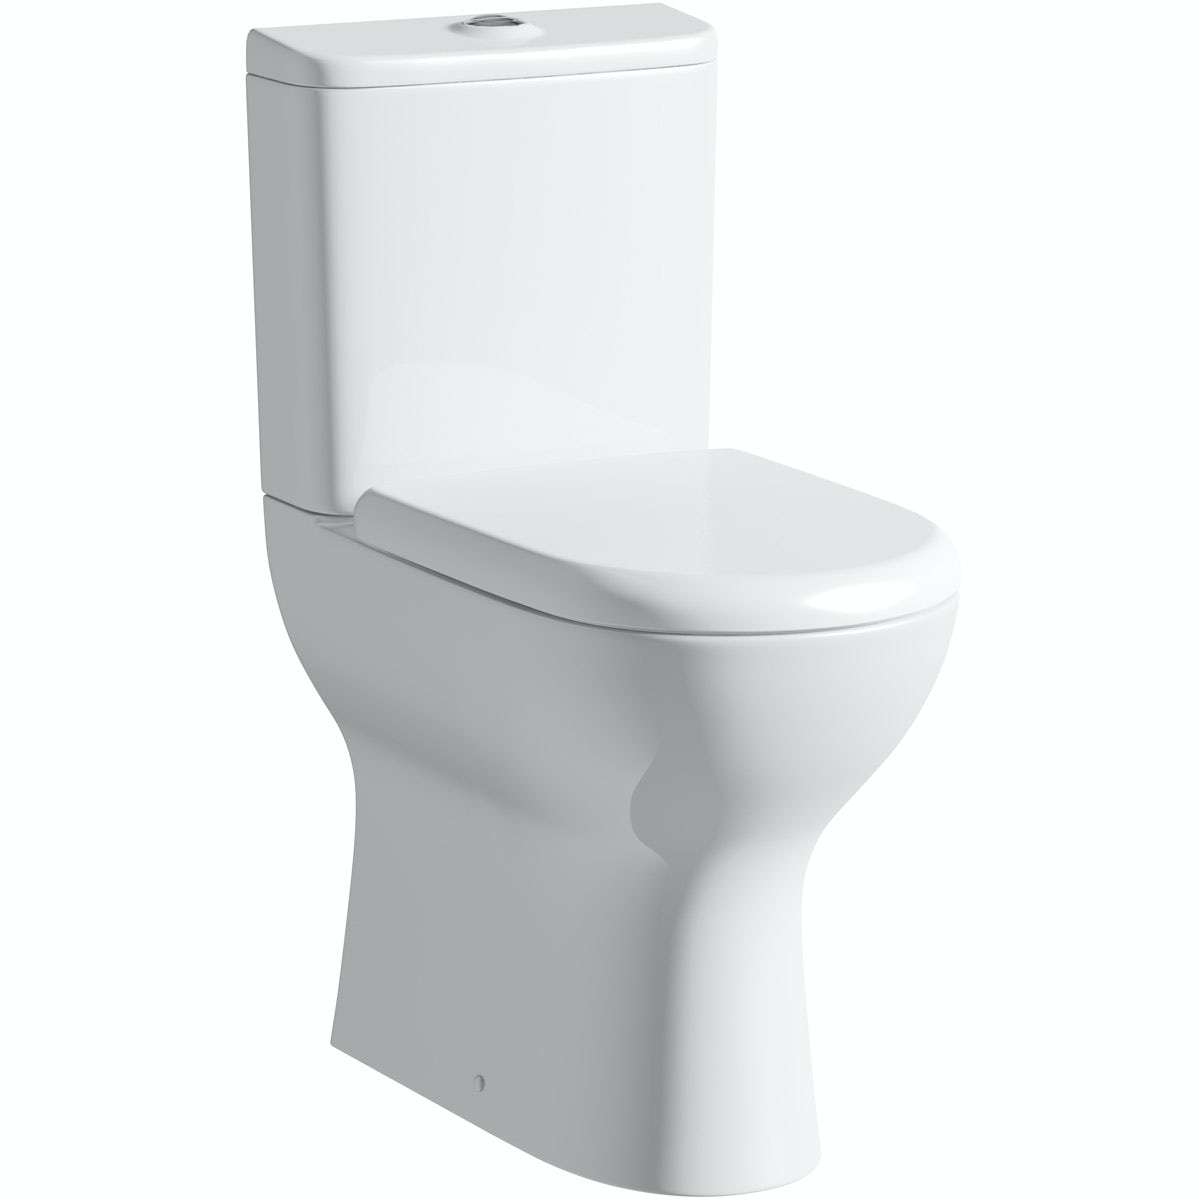 Mode Heath Comfort Height Close Coupled Toilet With Soft